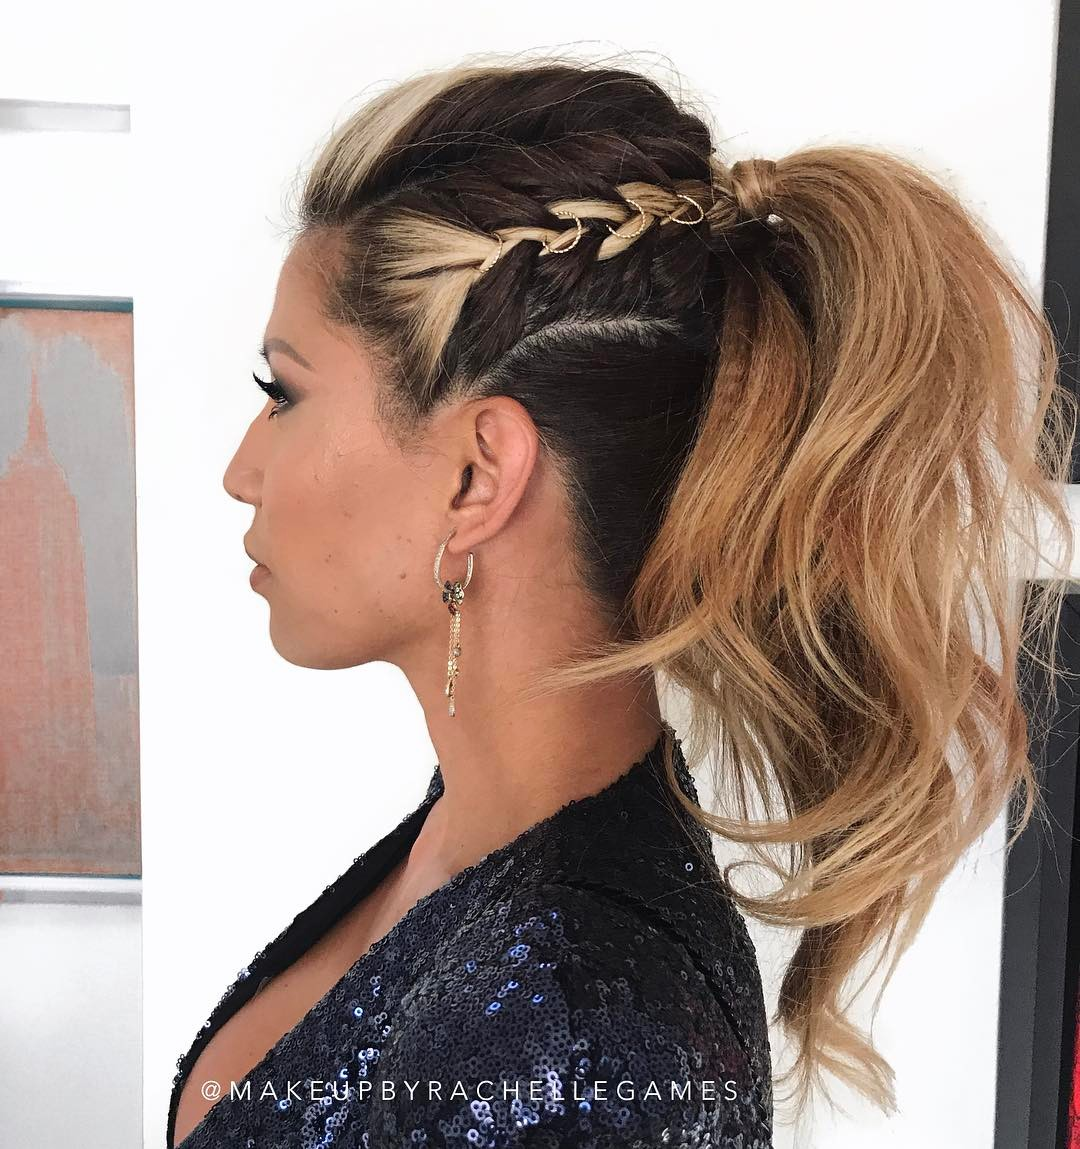 Ponytail Hair Styles for Women - Best Ponytail Hairstyle Designs